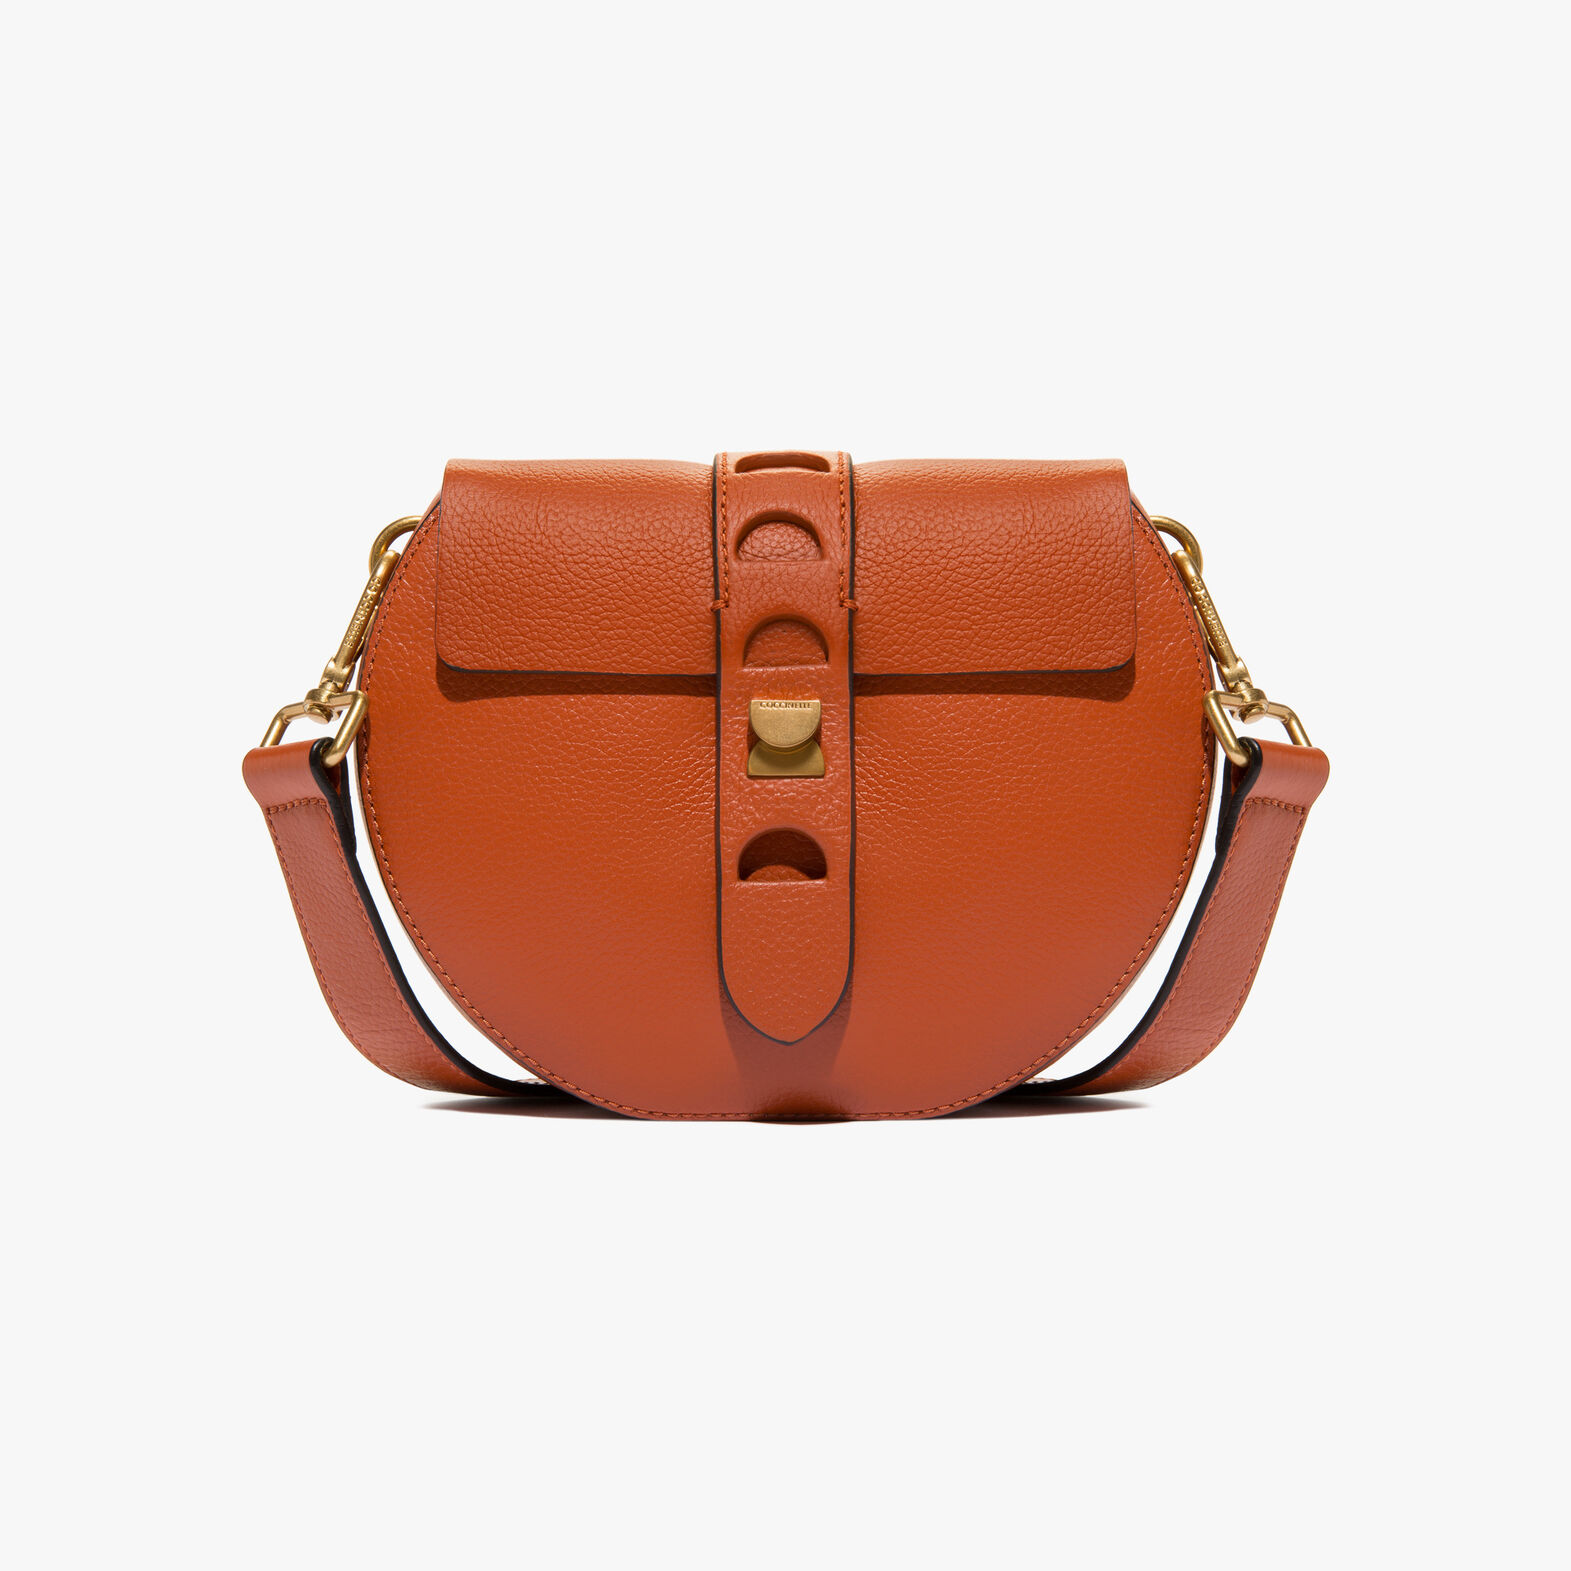 Carousel leather mini bag